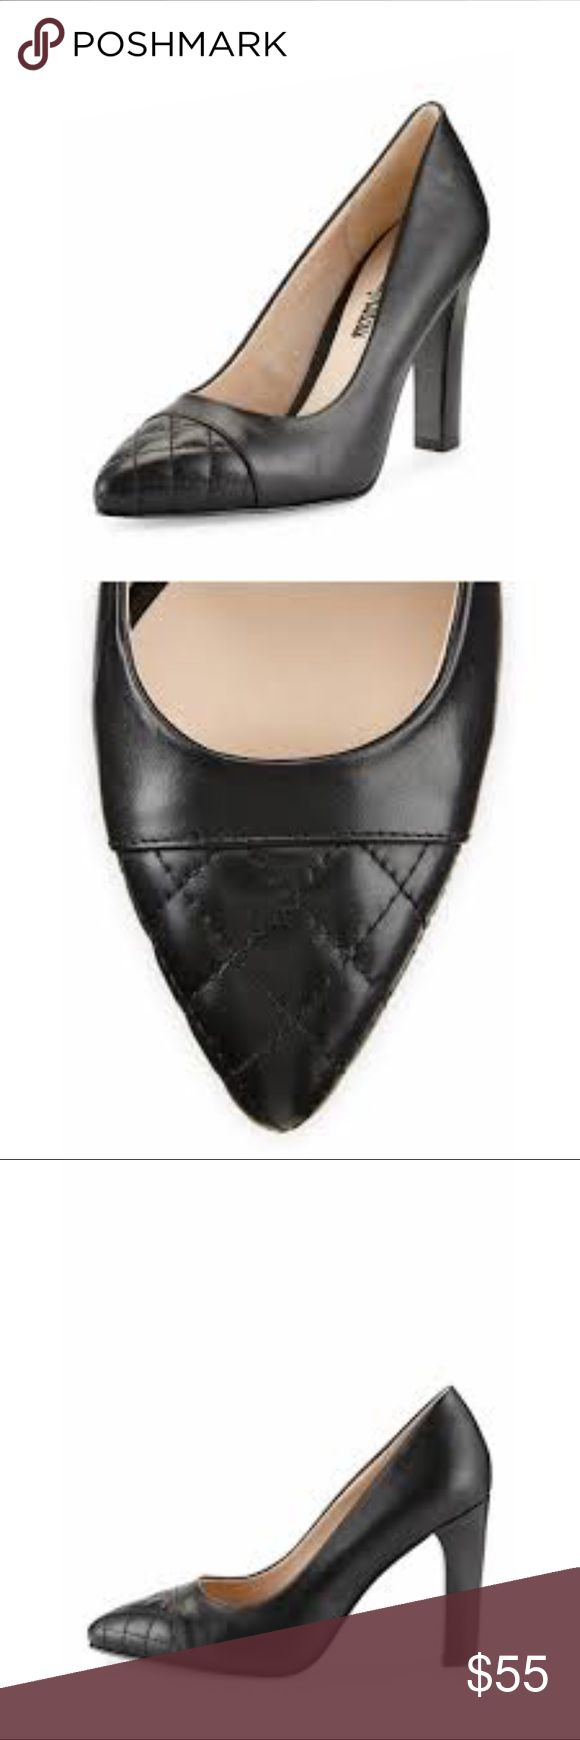 "FLASH SALE! New Neiman Marcus Pump New Neiman Marcus Quilted Cap-Toe Pump. Color is Black. Size 7. Smooth leather pump with pointed, quilted cap-toe. Padded insole. Approx 3 3/4"" stacked heel. Never been worn. Final sale. Neiman Marcus Shoes Heels"